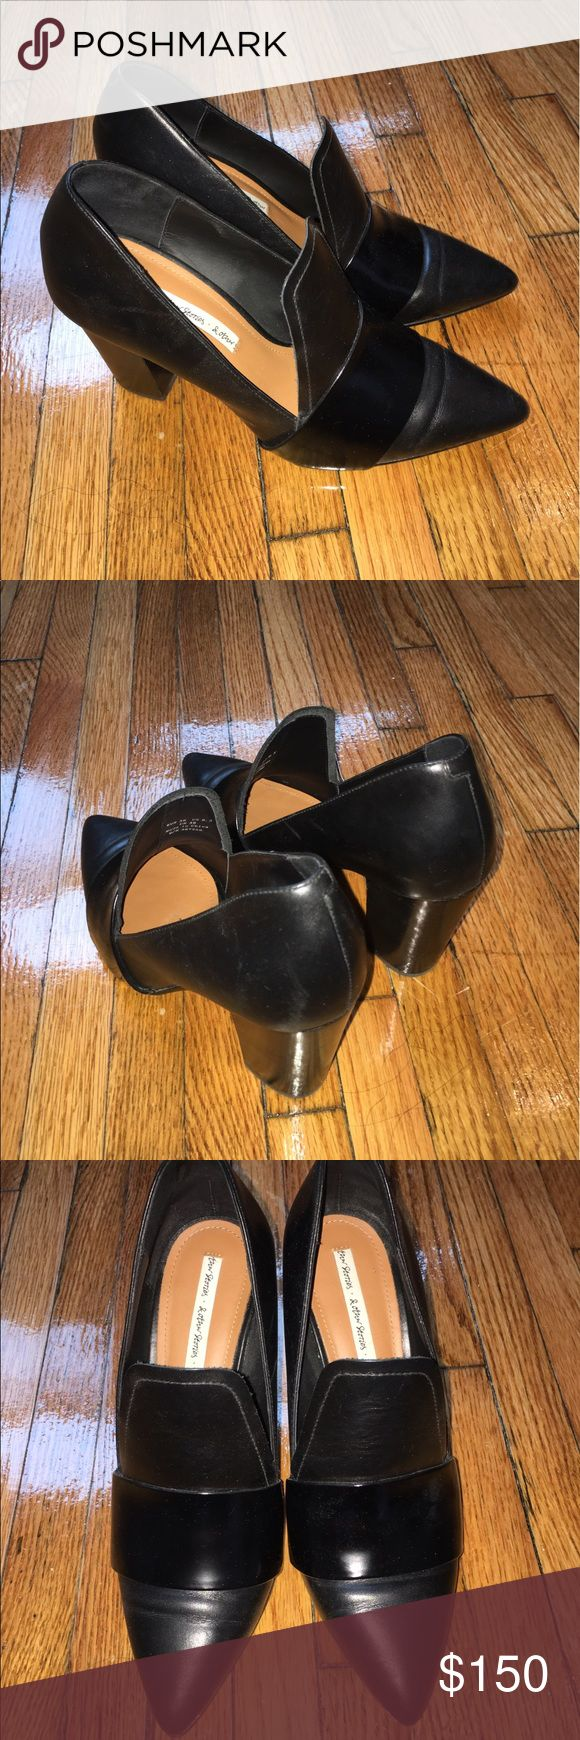 "& Other Stories Pointed Toe Pumps - Black EUR 36 Pointed toe pumps from & Other Stories in black. Size EUR 36 / US 6.5. 100% calf leather. Approximately 3"" stacked heel. Cushioned leather insole and leather and rubber outsole.  In excellent condition with minor scuffing on soles. Comes with original box. ❌❌NO TRADES. NO PP. PLEASE REFRAIN FROM ASKING❌❌ & Other Stories Shoes Heels"